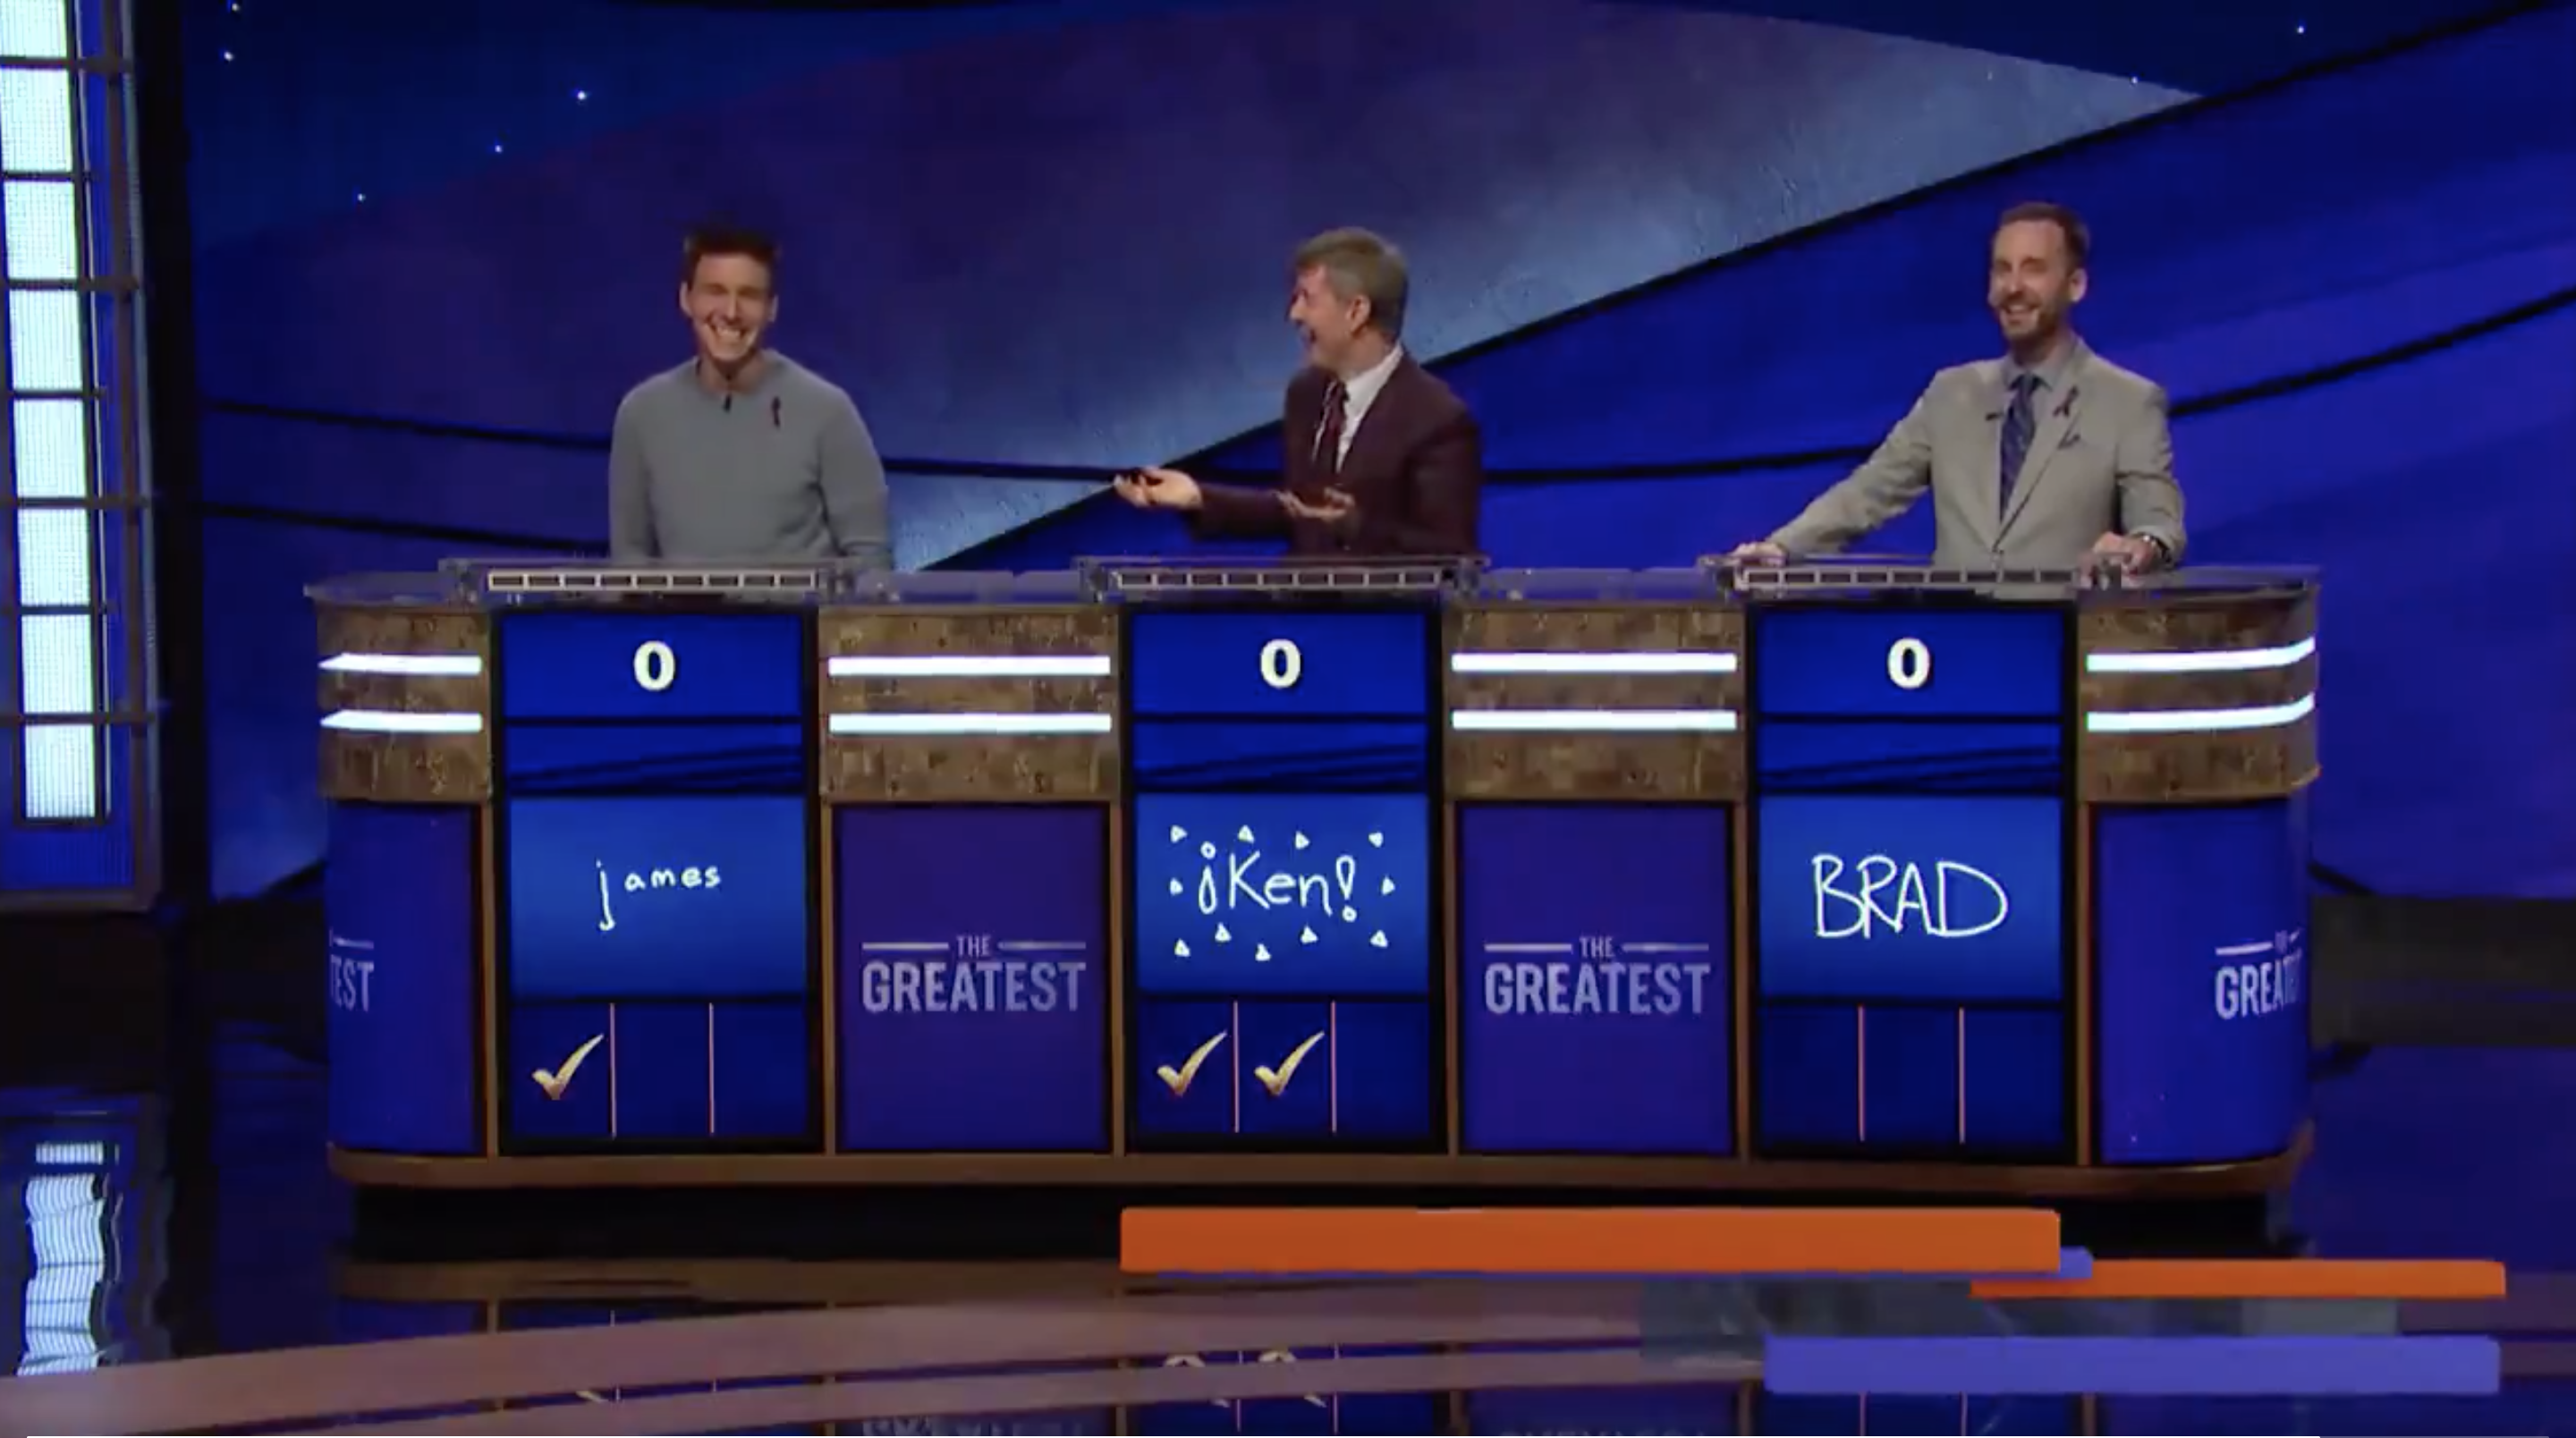 Screenshot from the final episode of 'Jeopardy! Greatest of All Time' showing James Holzhauer, Ken Jennings and Brad Rutter reacting with amusement after Holzhauer taunted Rutter.